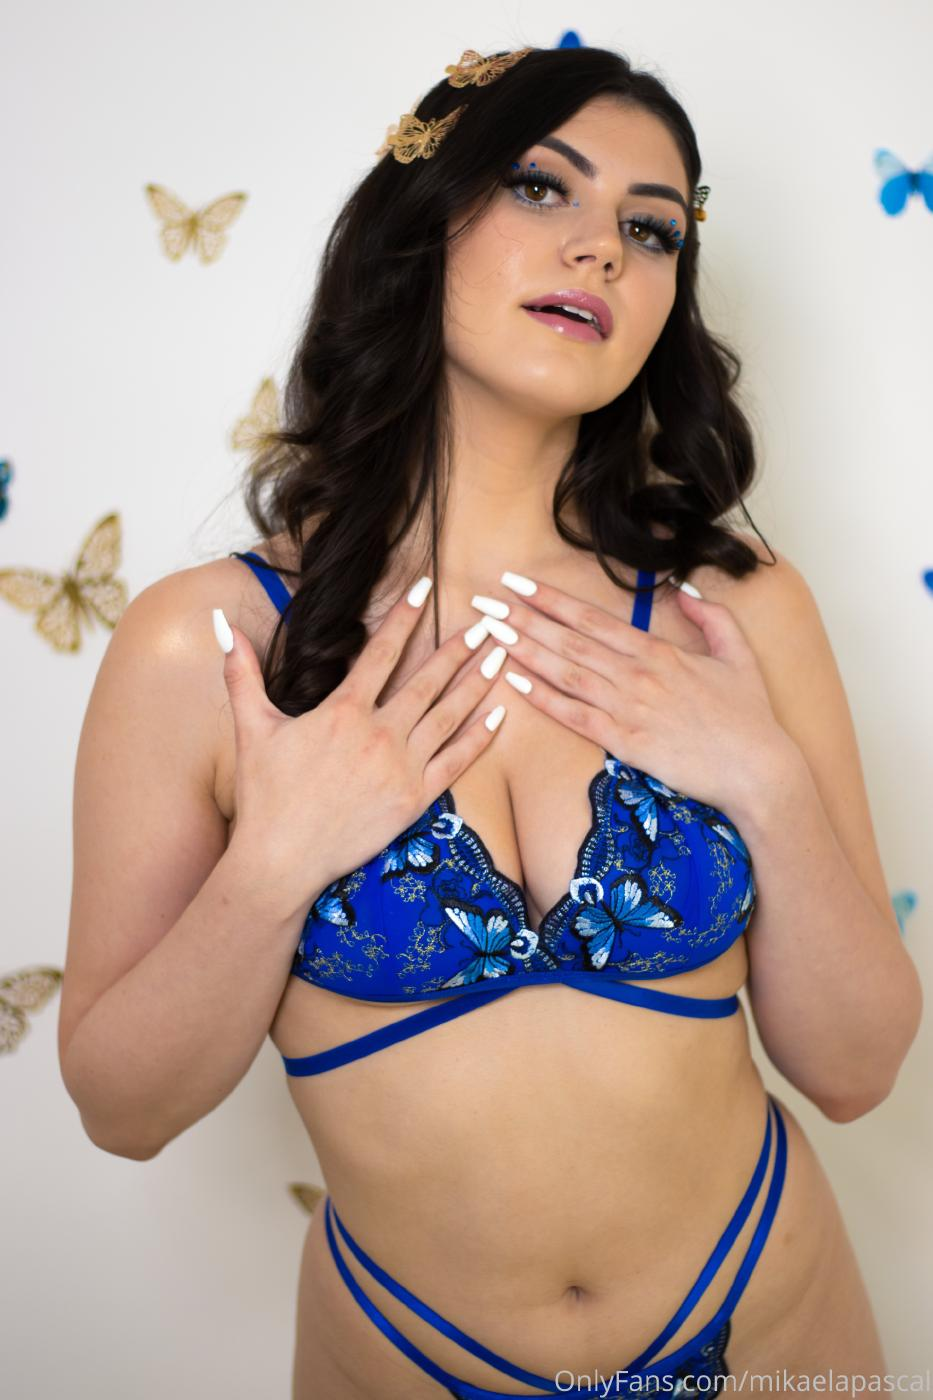 Mikaela Pascal Onlyfans April Extras Leaked 0026